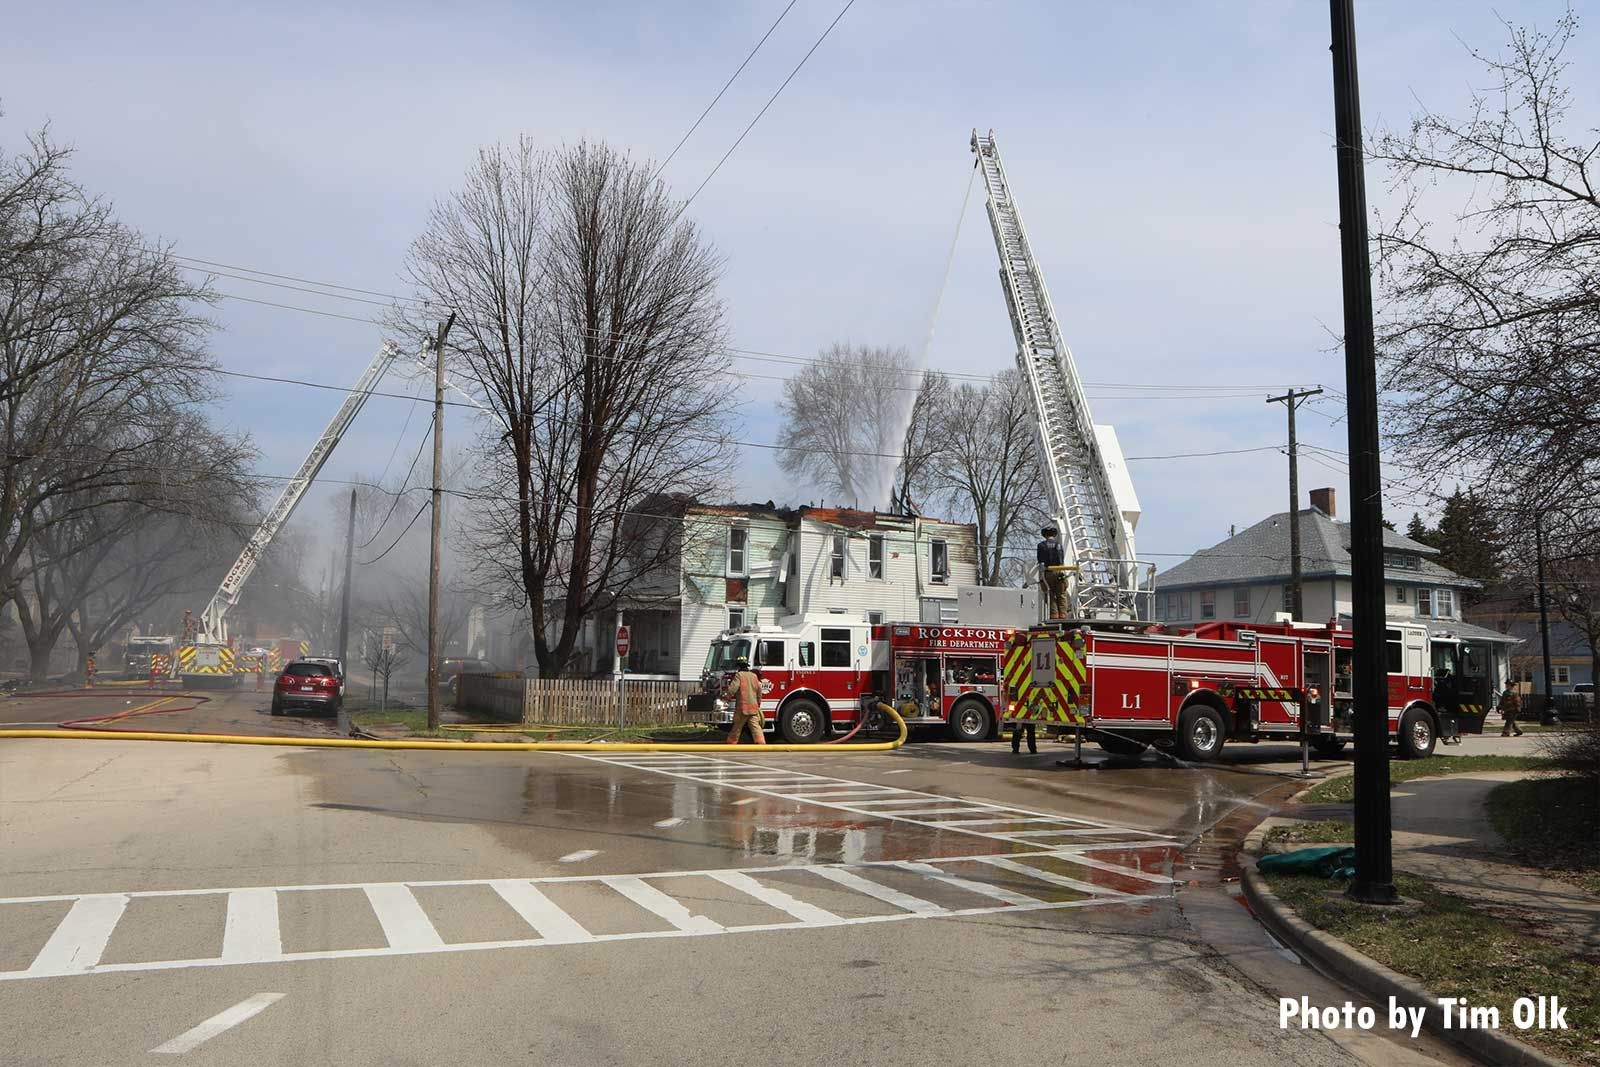 Firefighters and apparatus on scene at the fire